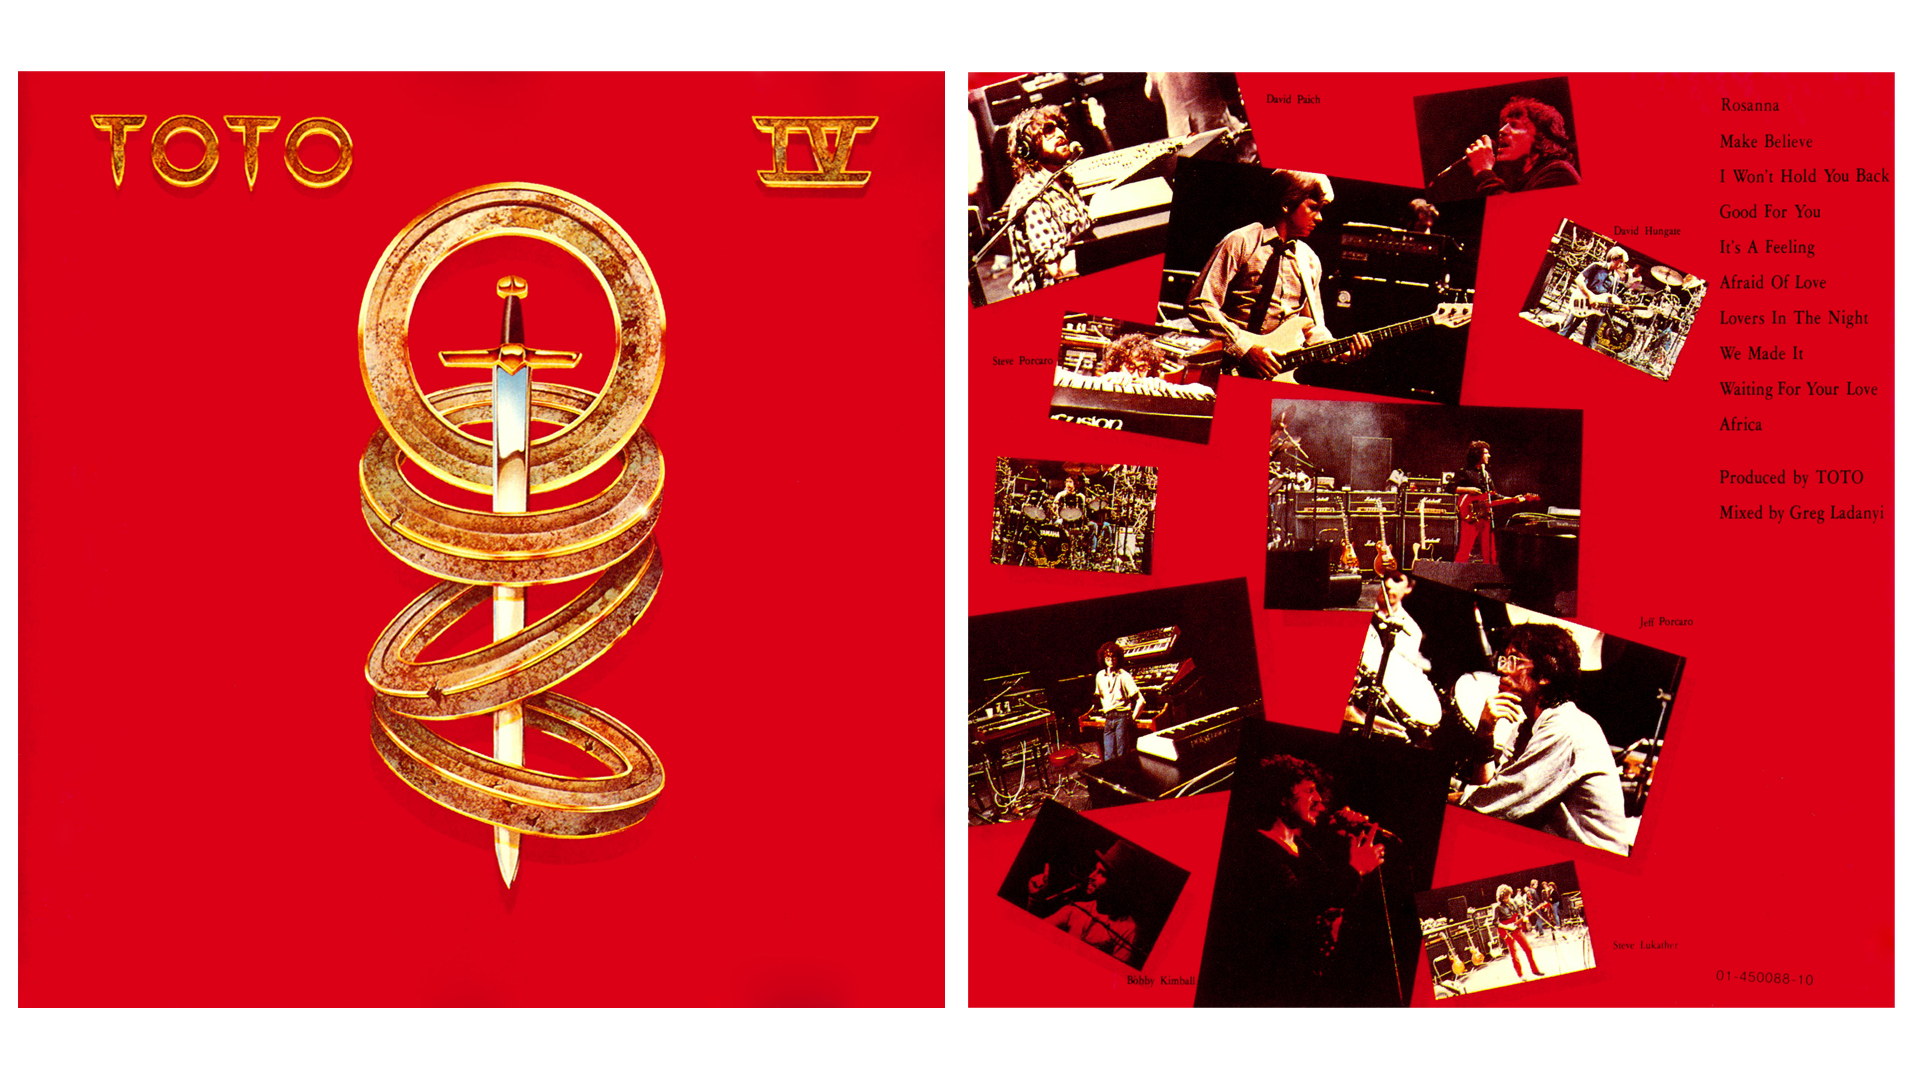 Toto IV booklet